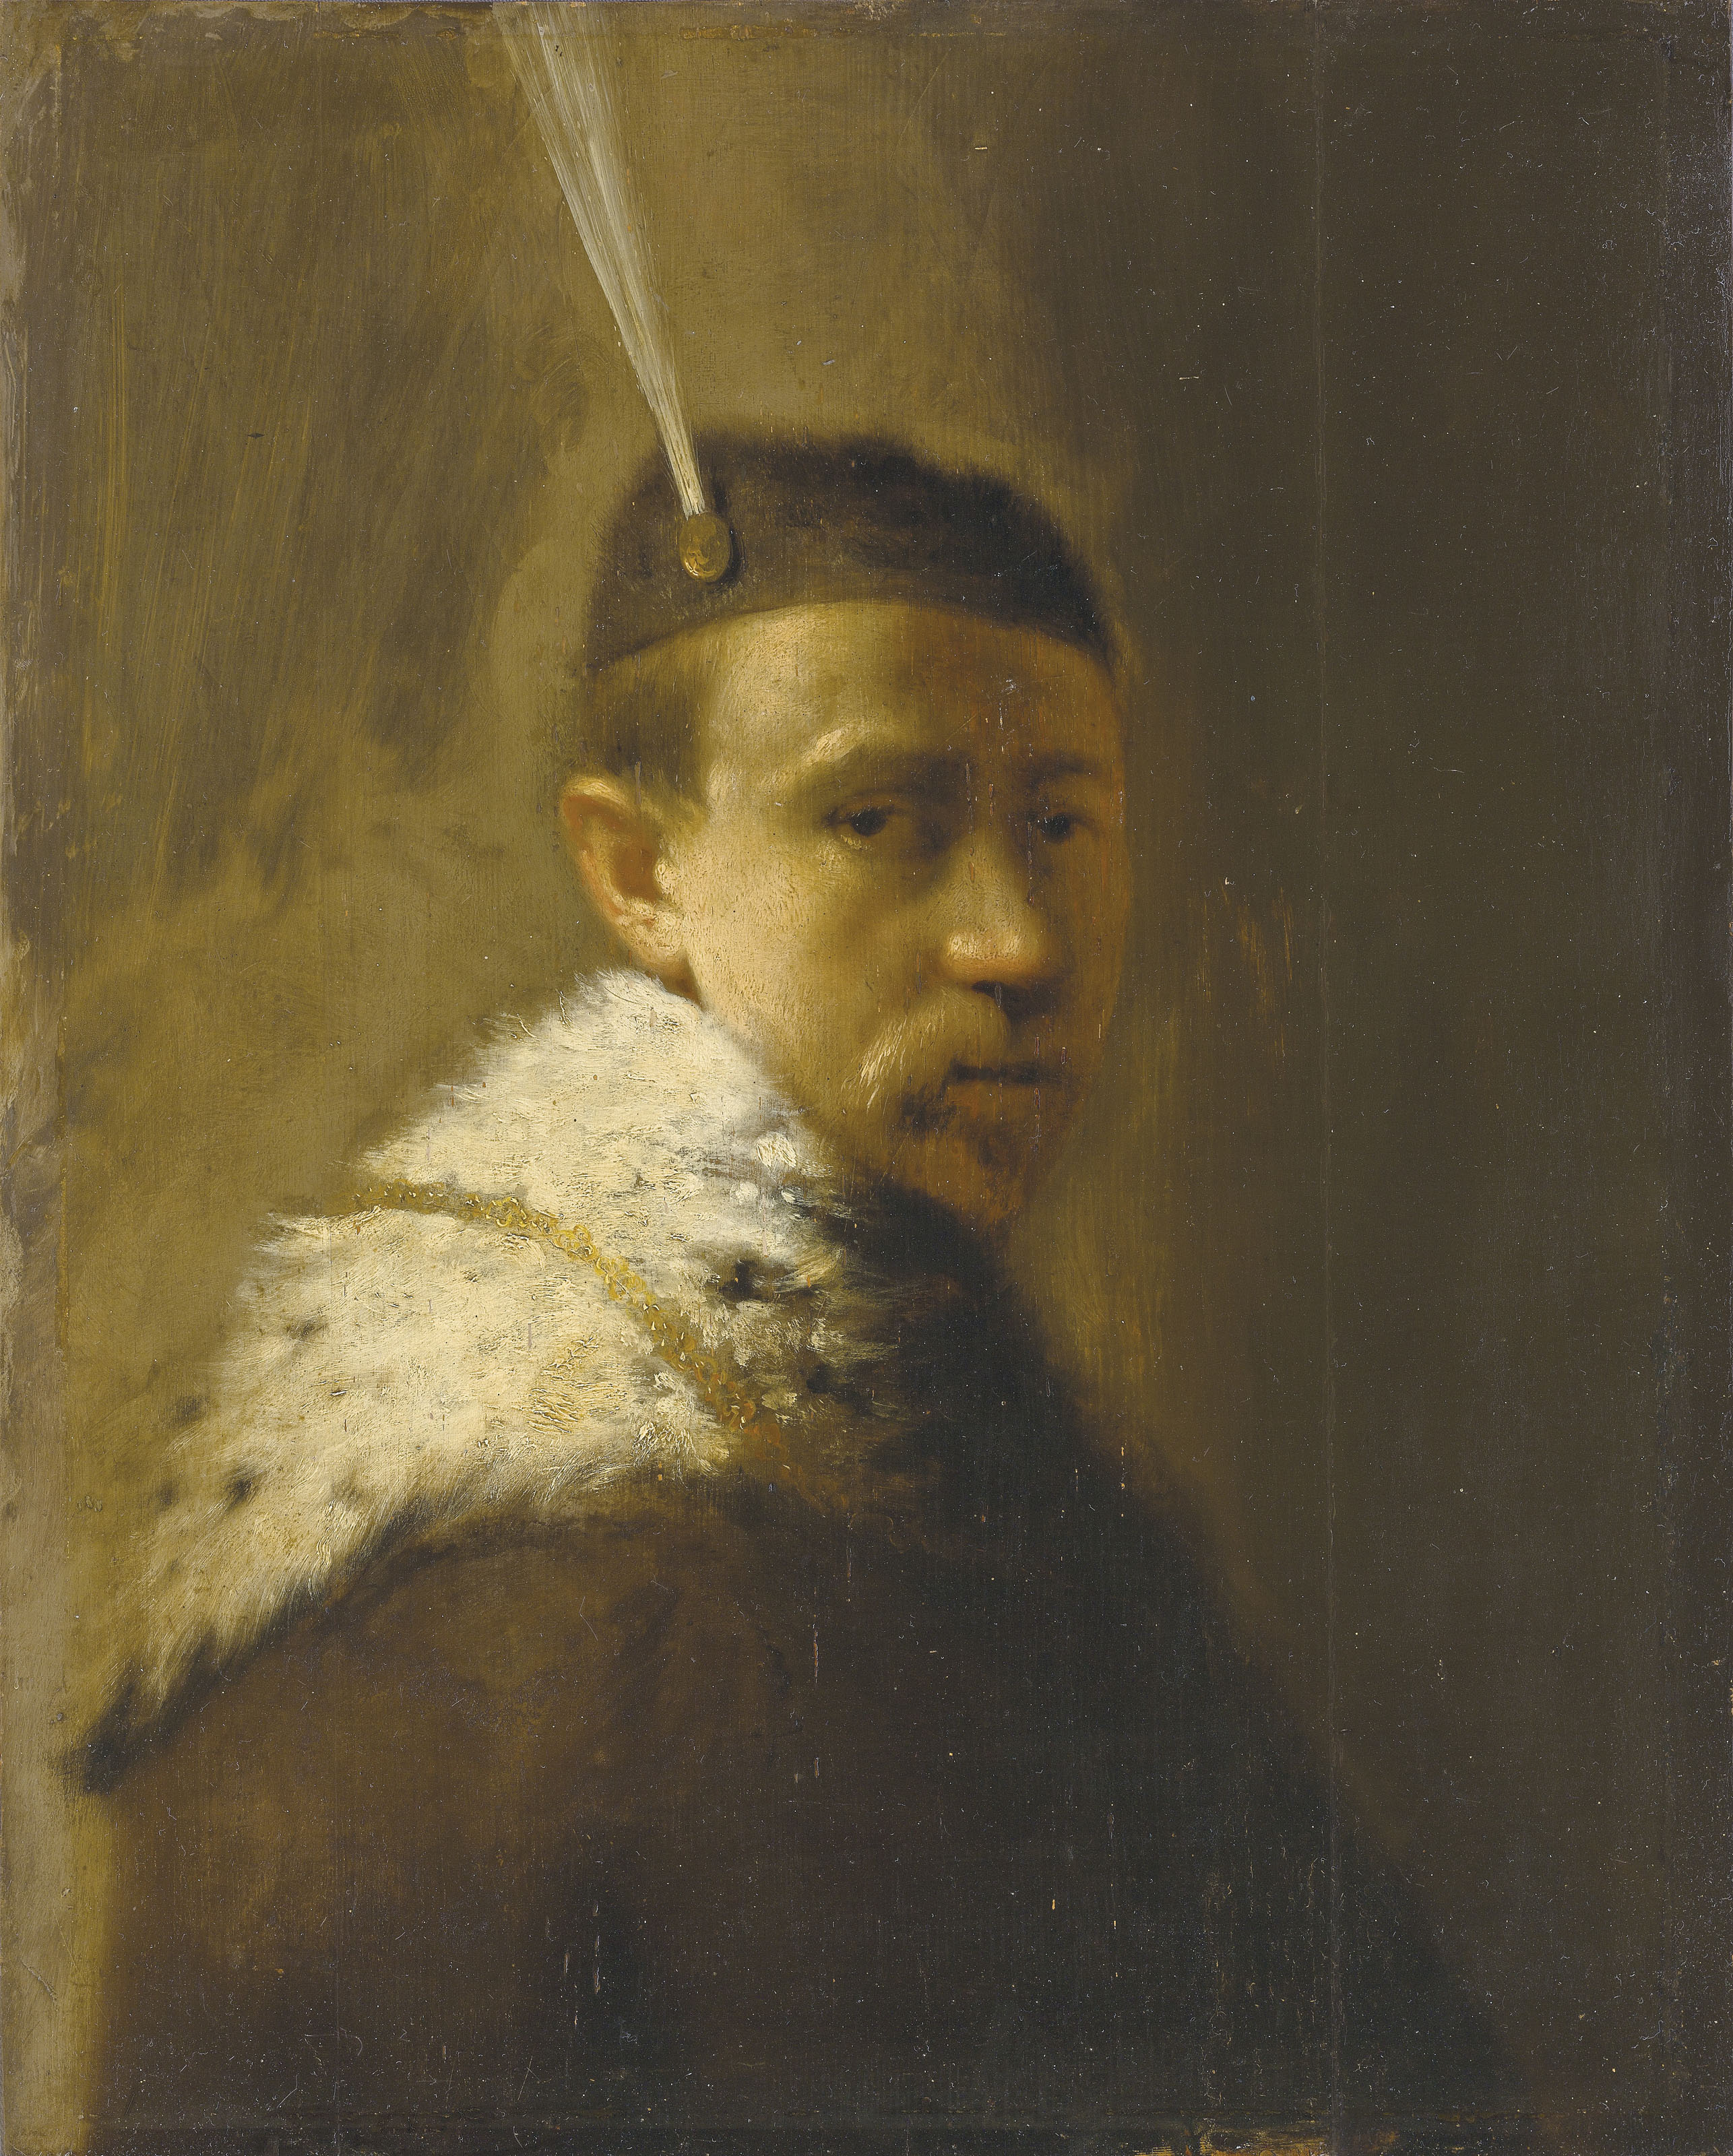 A man in a fur coat and a feathered hat